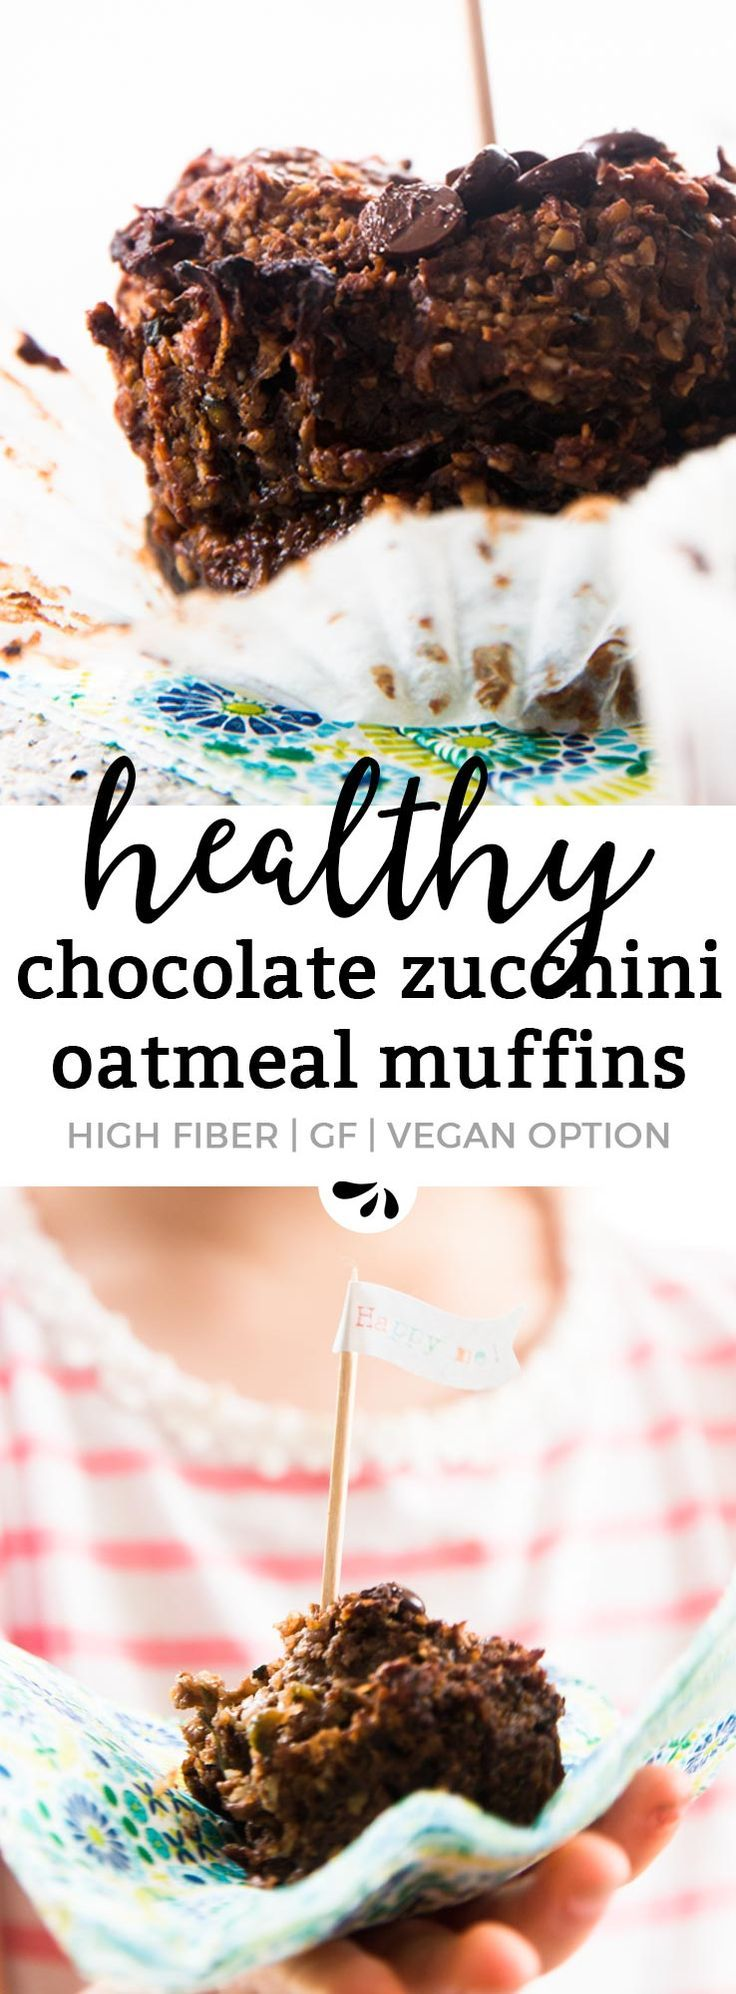 These Coconut Chocolate Zucchini Oatmeal Muffins are gluten free, dairy free, egg free and easily vegan if you substitute the honey with maple syrup or agave nectar. They're great if you're looking for healthy homemade snack recipes for kids and toddlers,